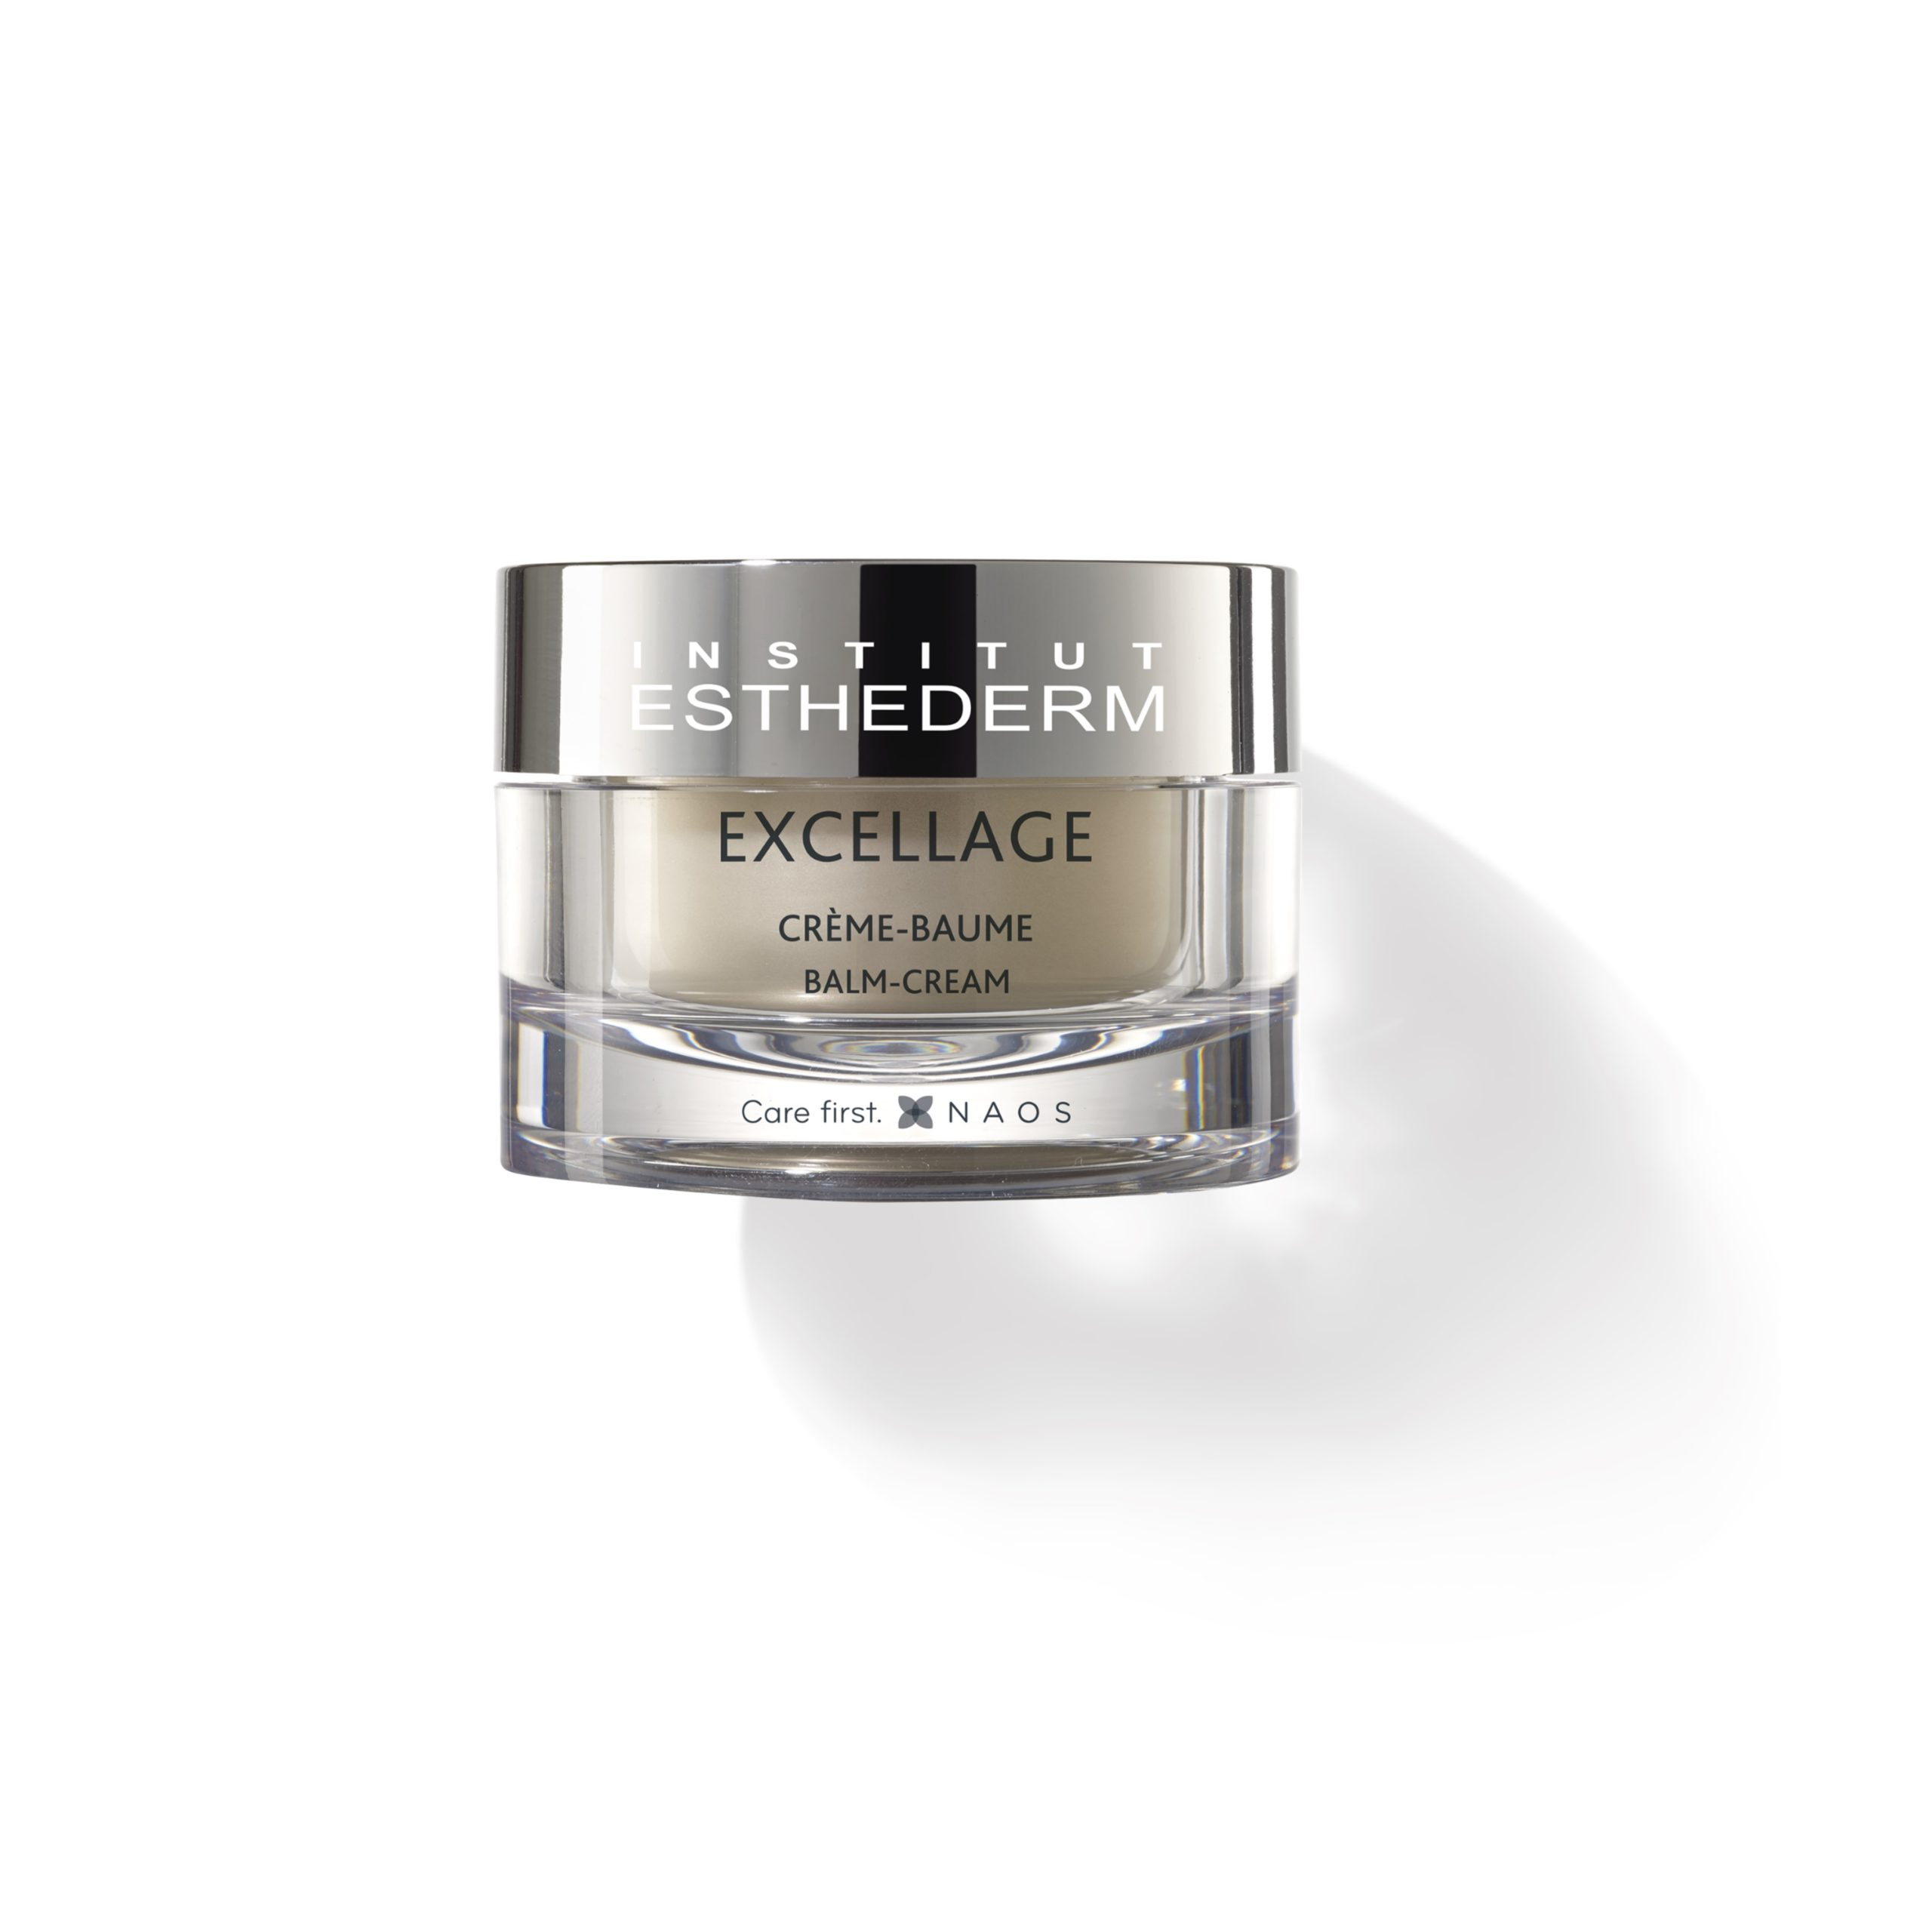 ESTHEDERM product photo, Excellage Cream-Balm 50ml, concentrated, nourishes, redensifies, restores radiance, unifies the complexion, mature skin